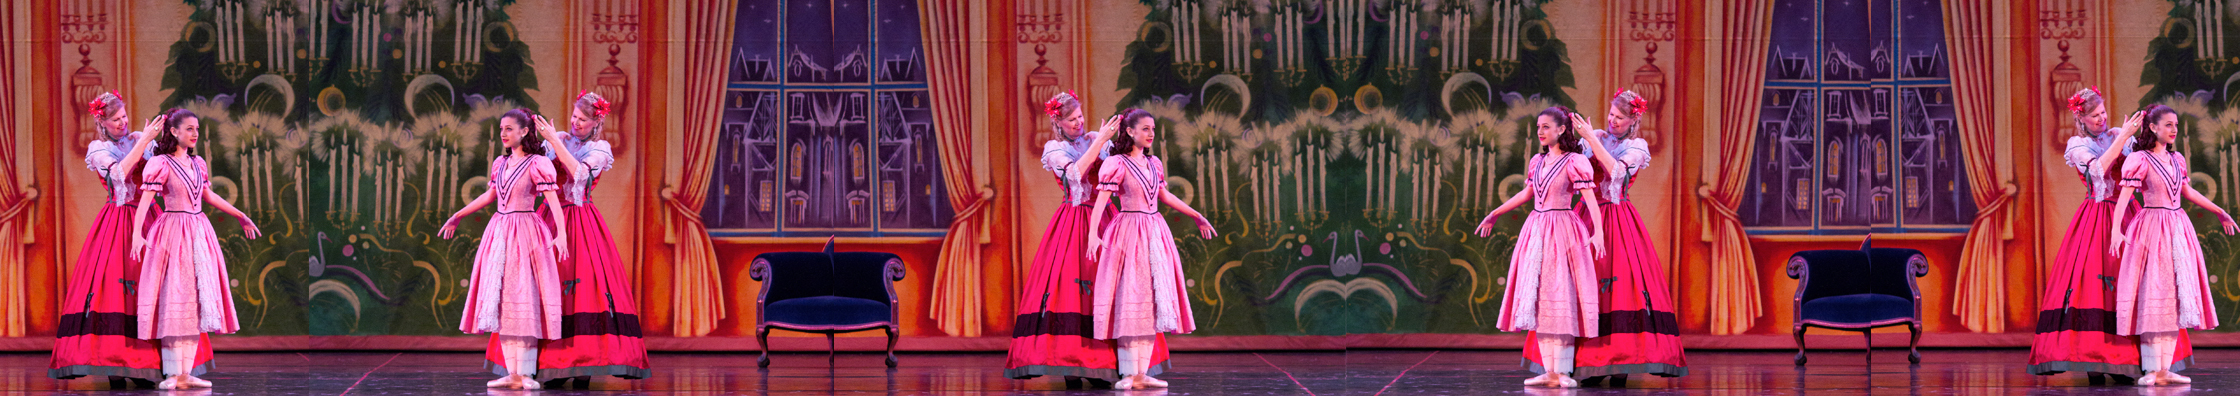 Santa Barbara Festival Ballet - Home of the Santa Barbara Nutcracker Ballet Tradition